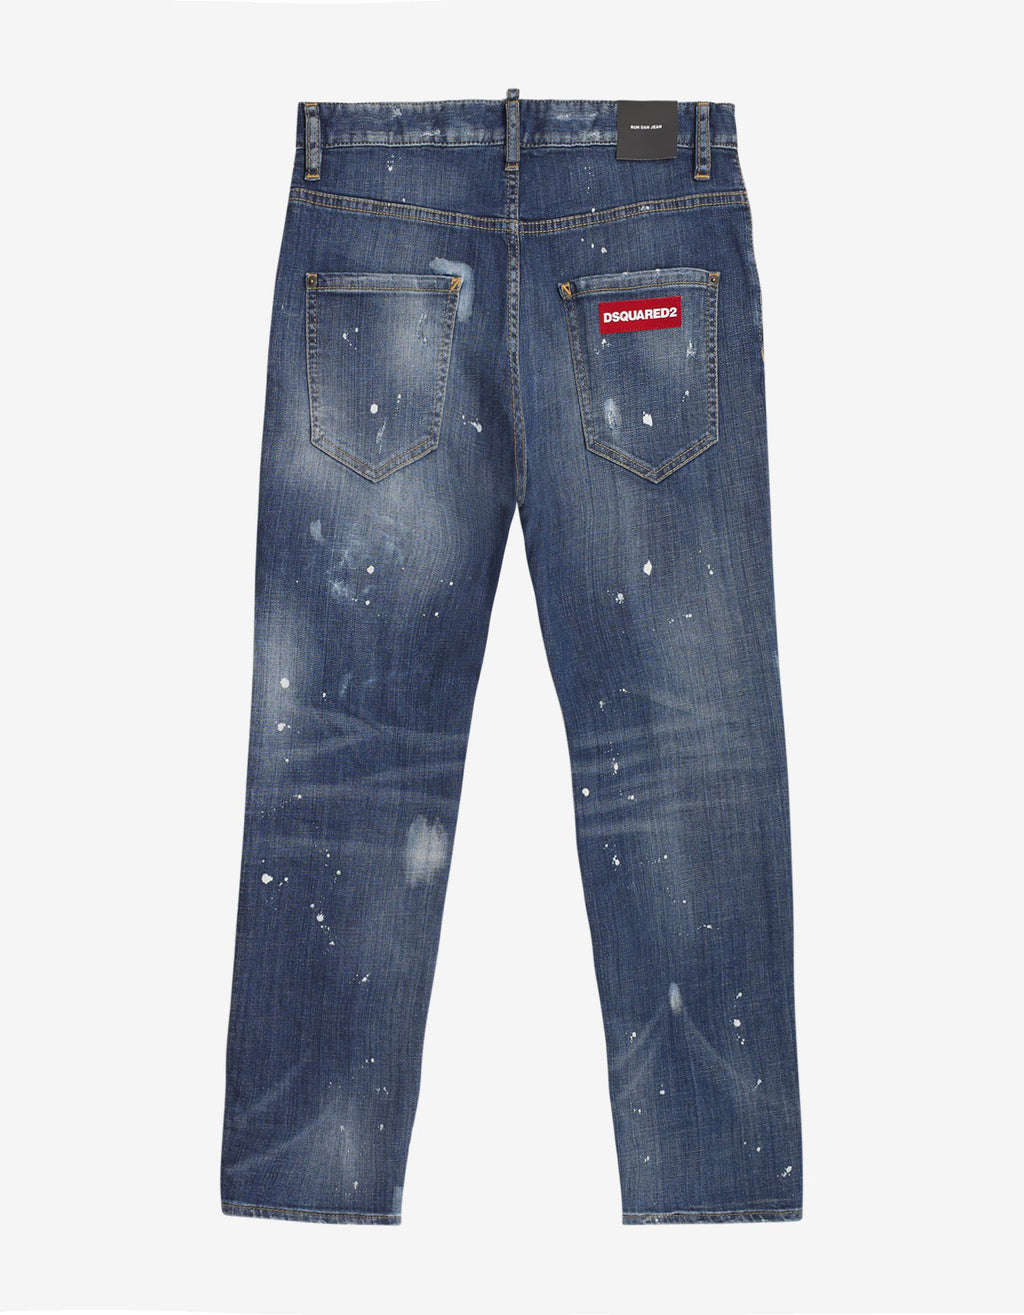 Blue Distressed Run Dan Jeans